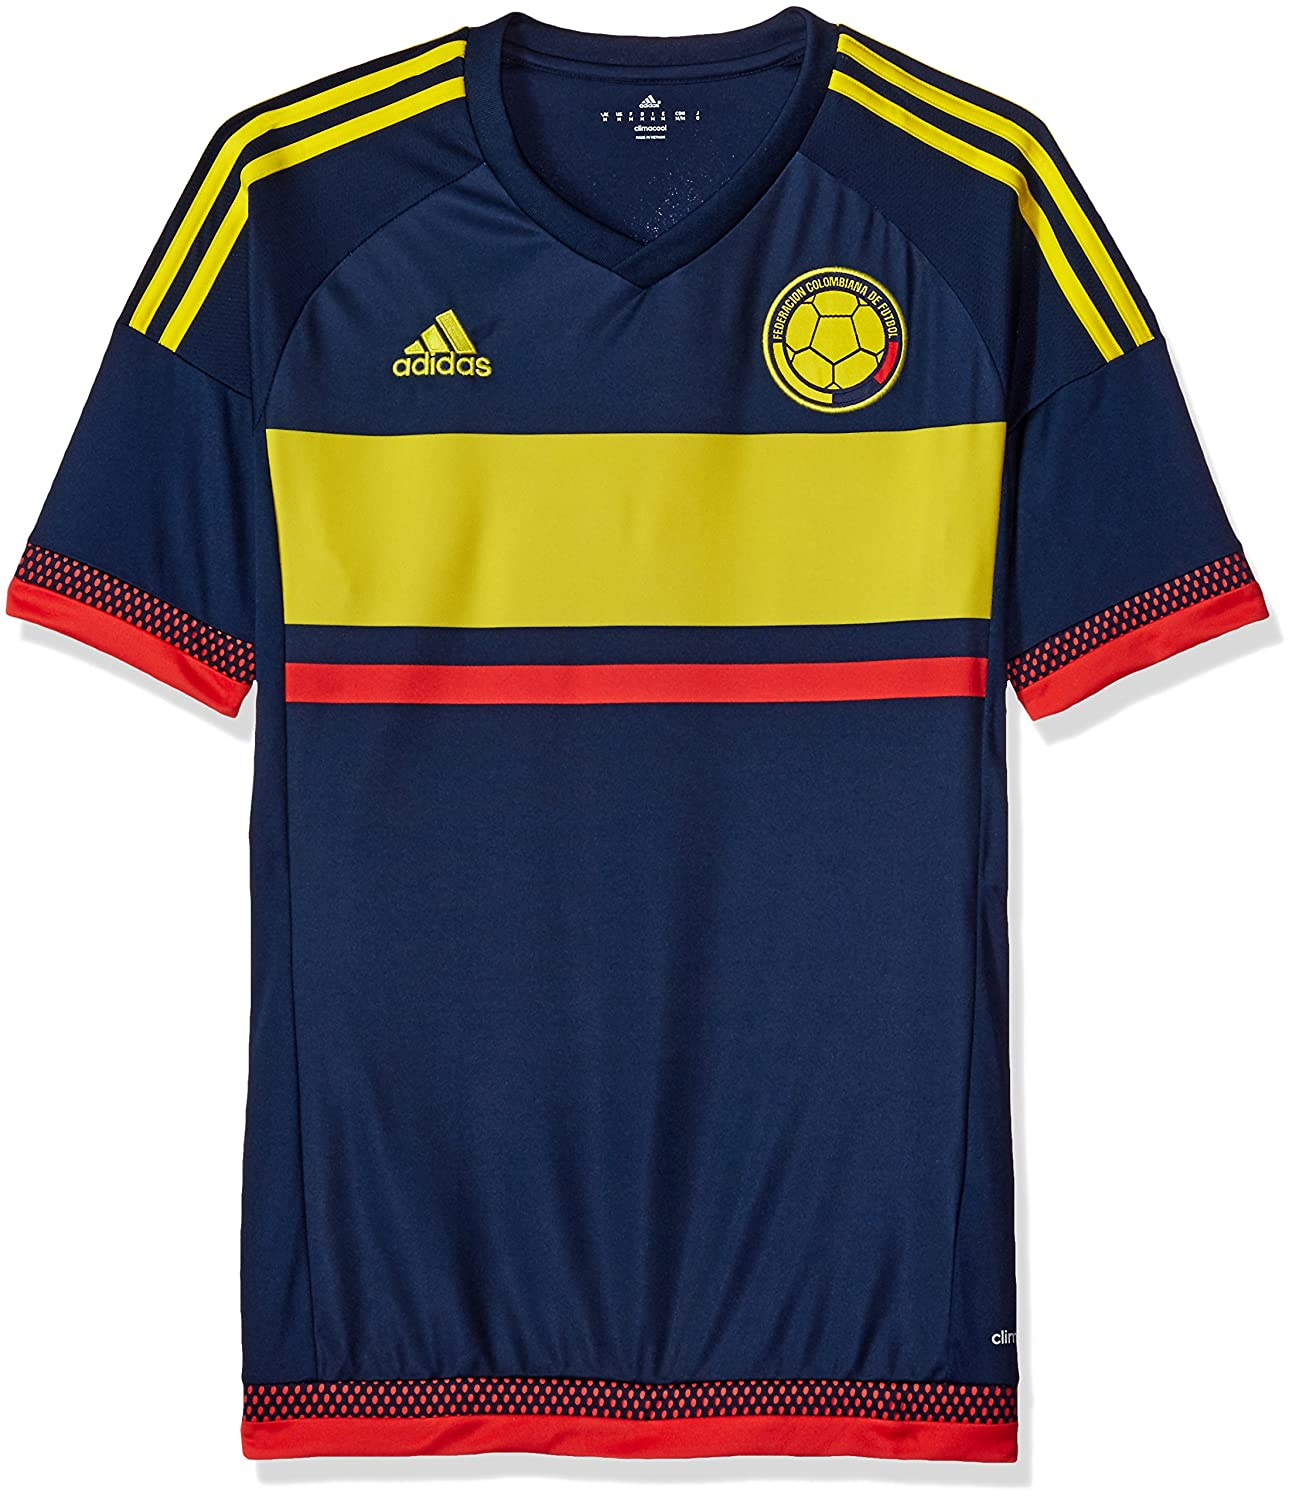 adidas Men's Columbia Replica Player Jersey S1606LHAG810